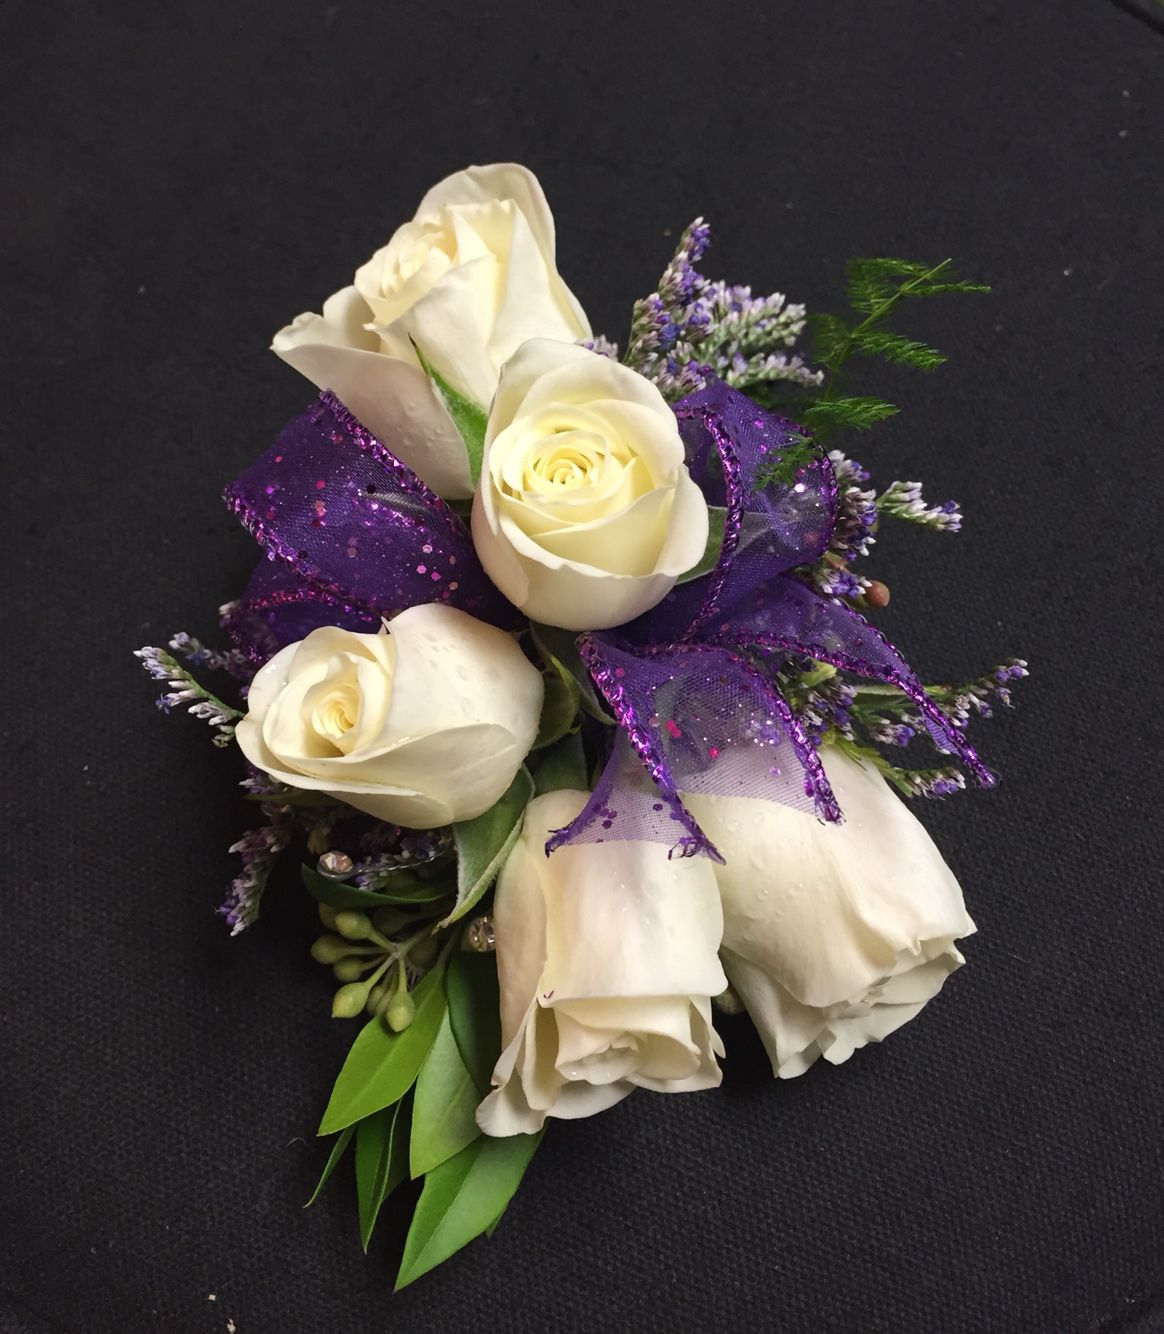 Homecoming Corsage With White Spray Roses Caspia Iridescent Gems And Purple Glitter Ribbon White Spray Roses Homecoming Corsage Spray Roses